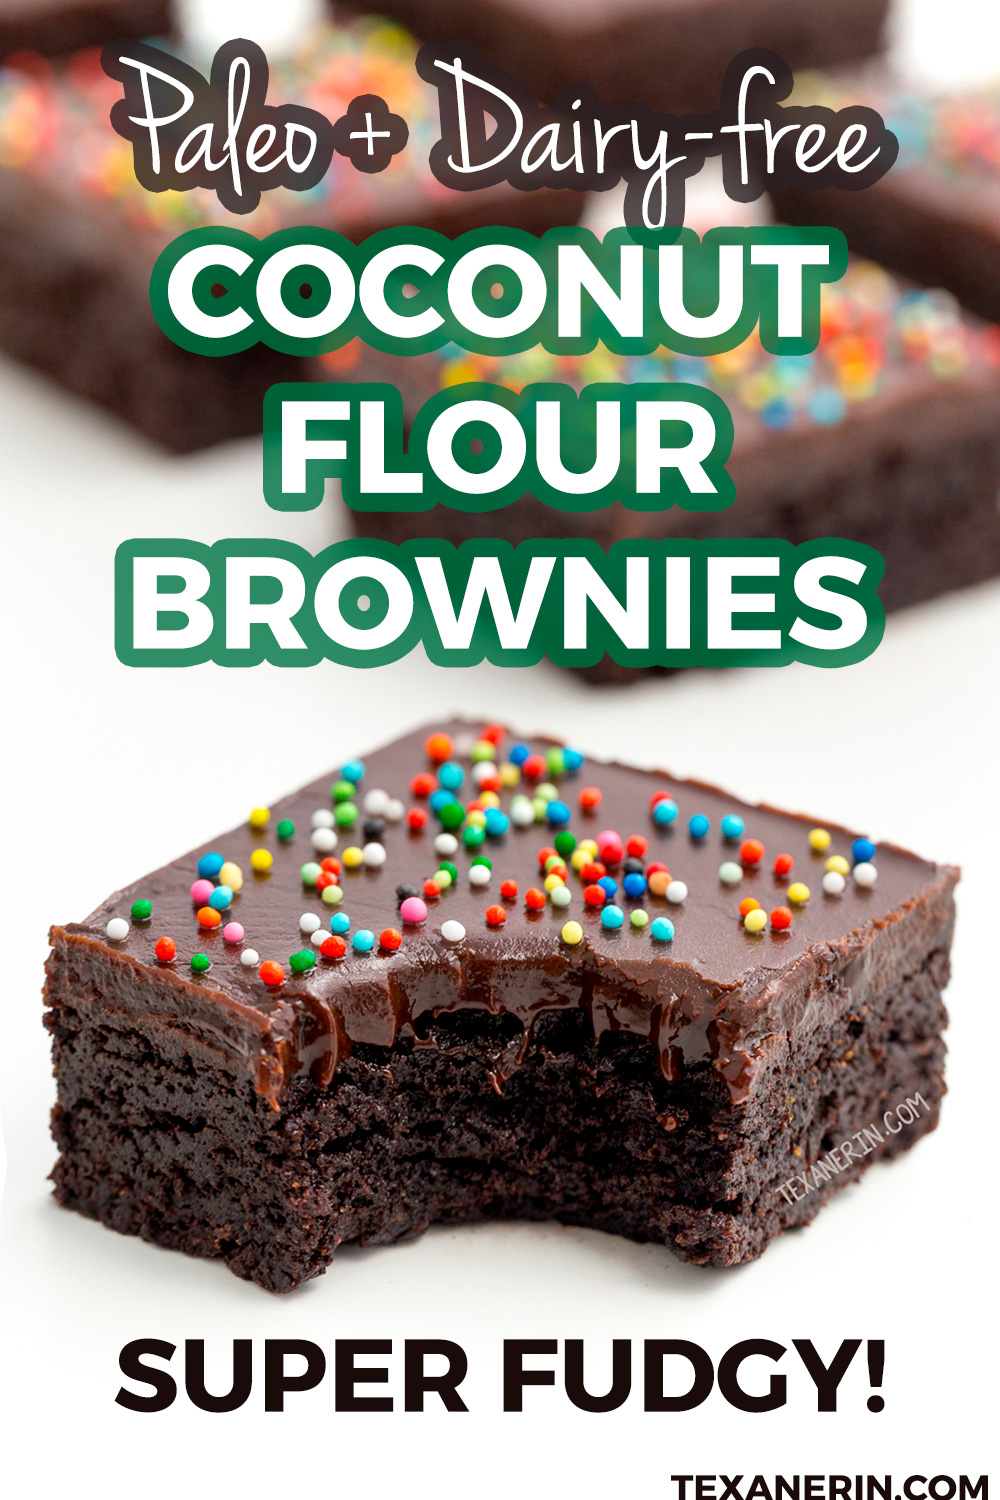 These coconut flour brownies are super fudgy and are also paleo, grain-free and dairy-free! Topped with chocolate fudge frosting.